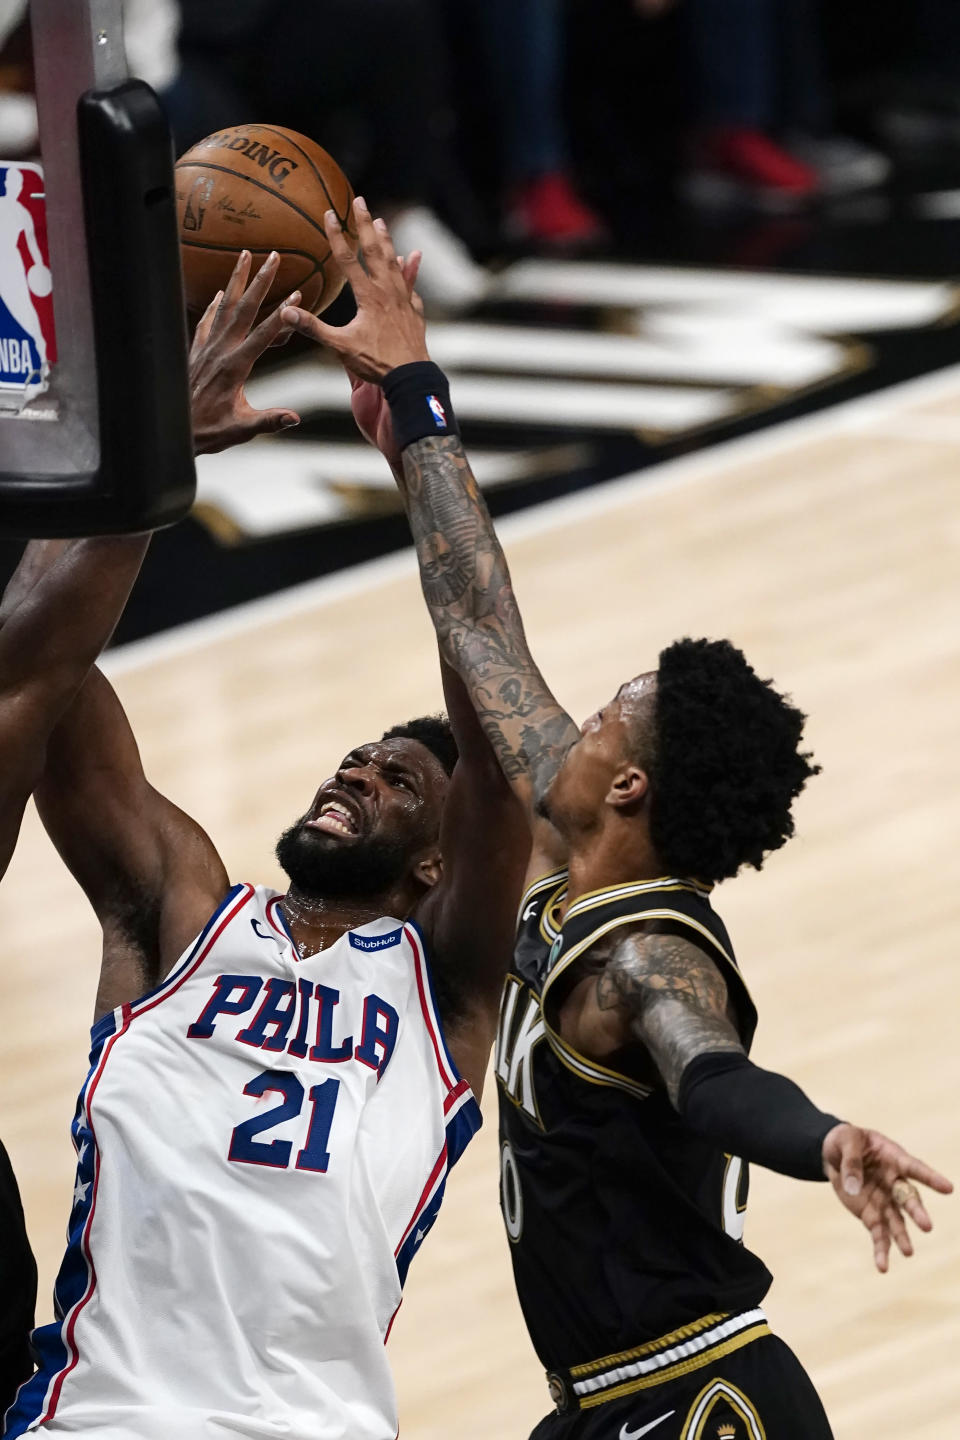 Philadelphia 76ers center Joel Embiid (21) battles Atlanta Hawks forward John Collins, right, as he goes up for a basket during the first half of Game 6 of an NBA basketball Eastern Conference semifinal series Friday, June 18, 2021, in Atlanta. (AP Photo/John Bazemore)